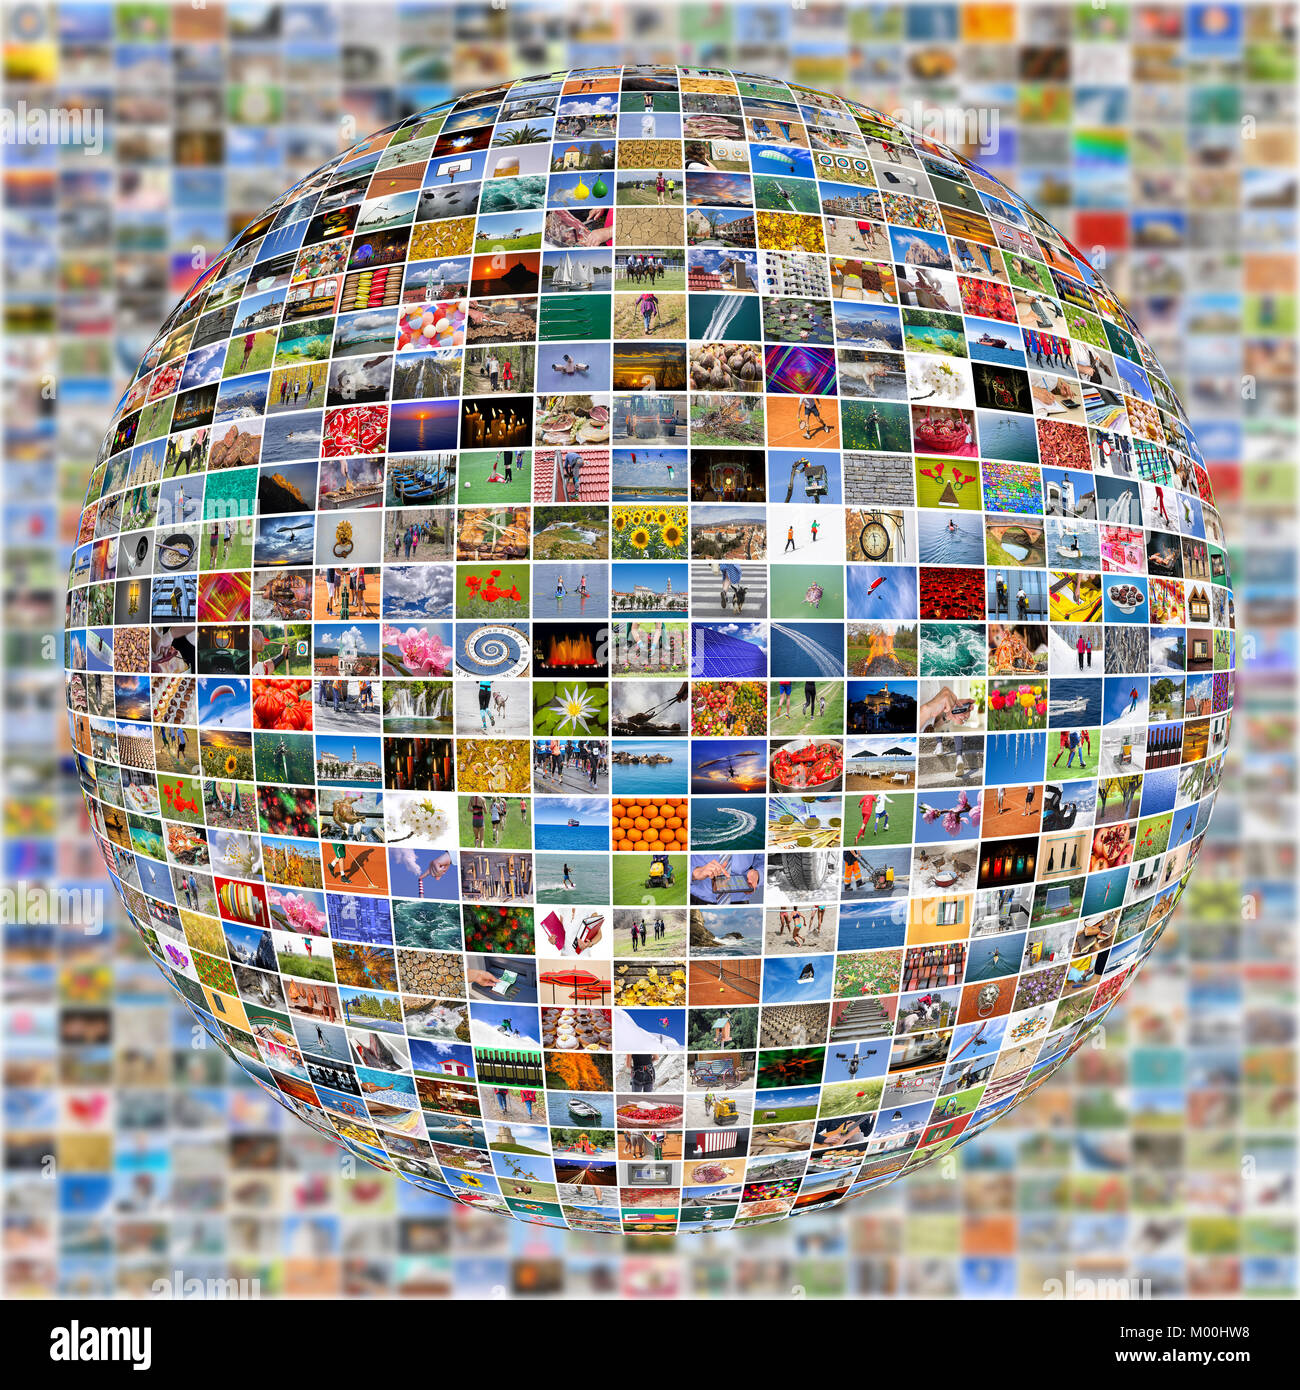 Big Multimedia Video Wall Sphere at tv screens showing living in the world - Stock Image